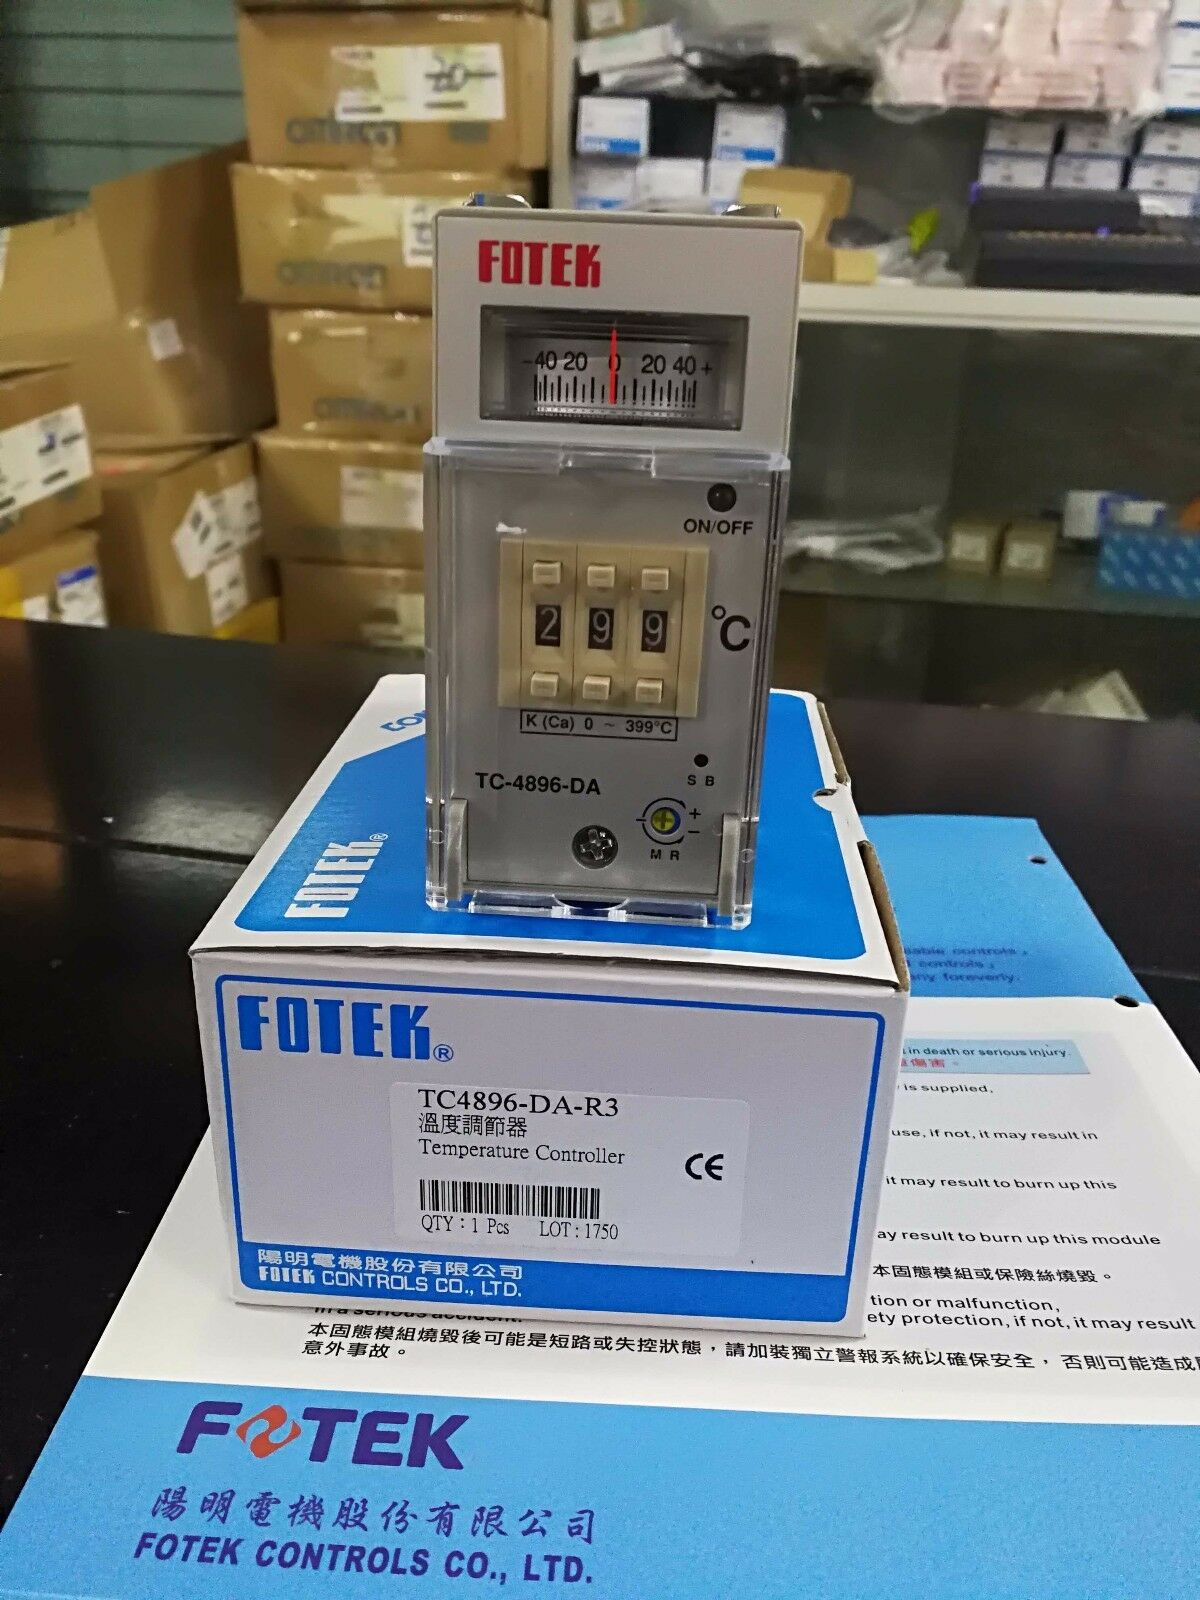 New 1Pc Fotek TC4896-DA-R3 Temperature Controller free shipping